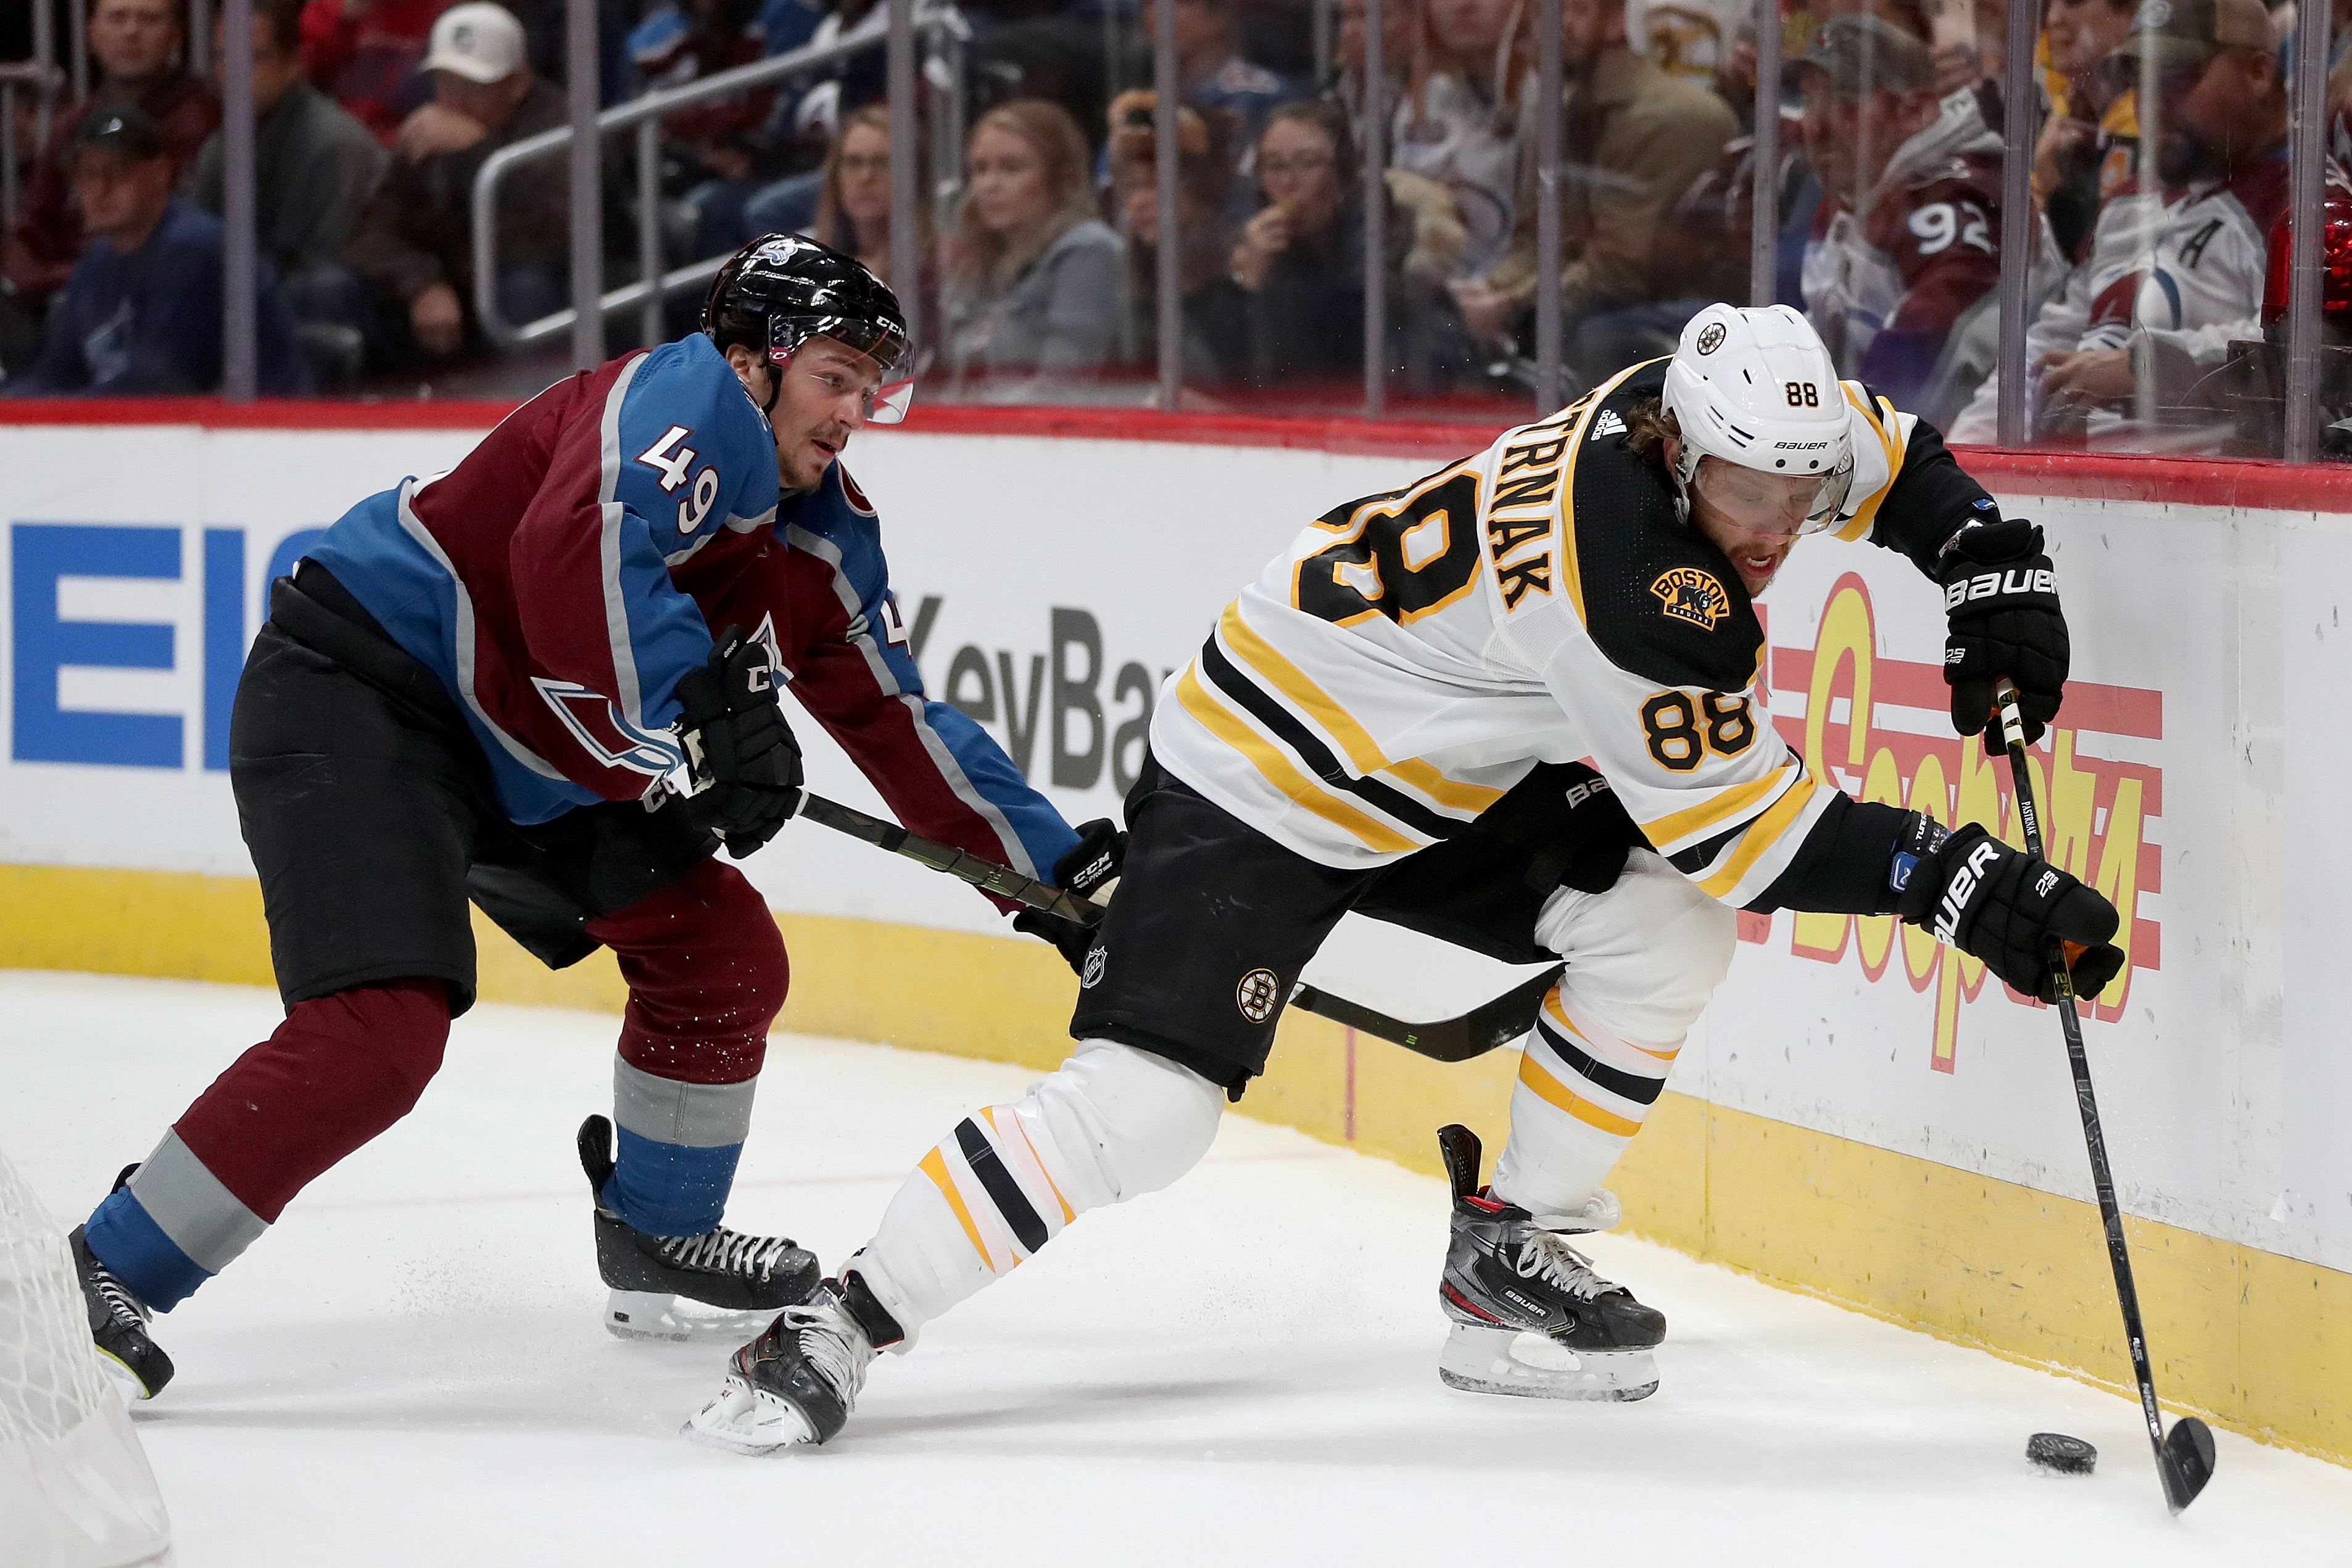 watch free nhl hockey games live streaming online